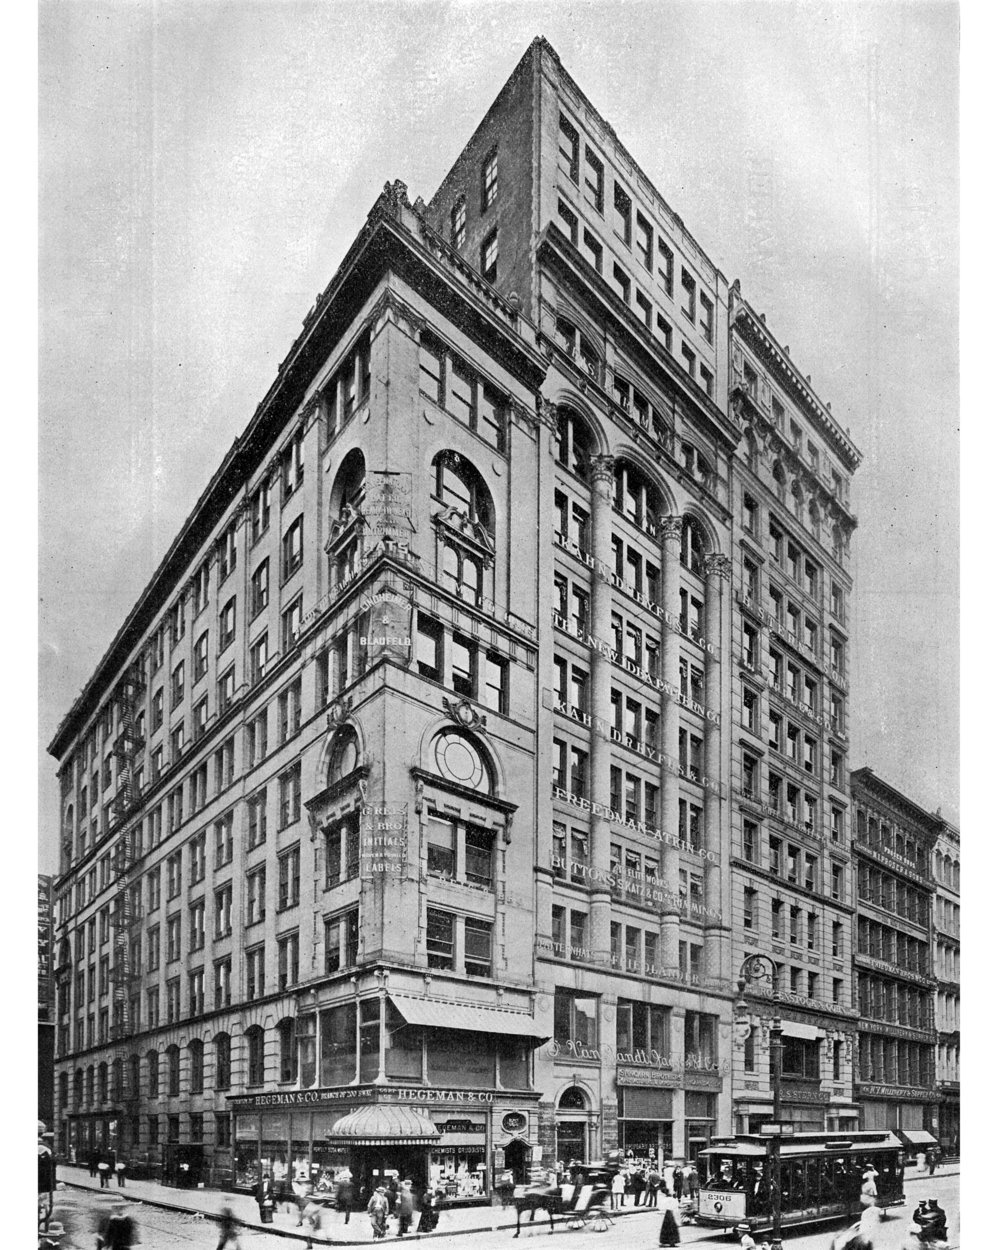 02_Both Sides of Bway 640 Bway-1910 ca.jpg